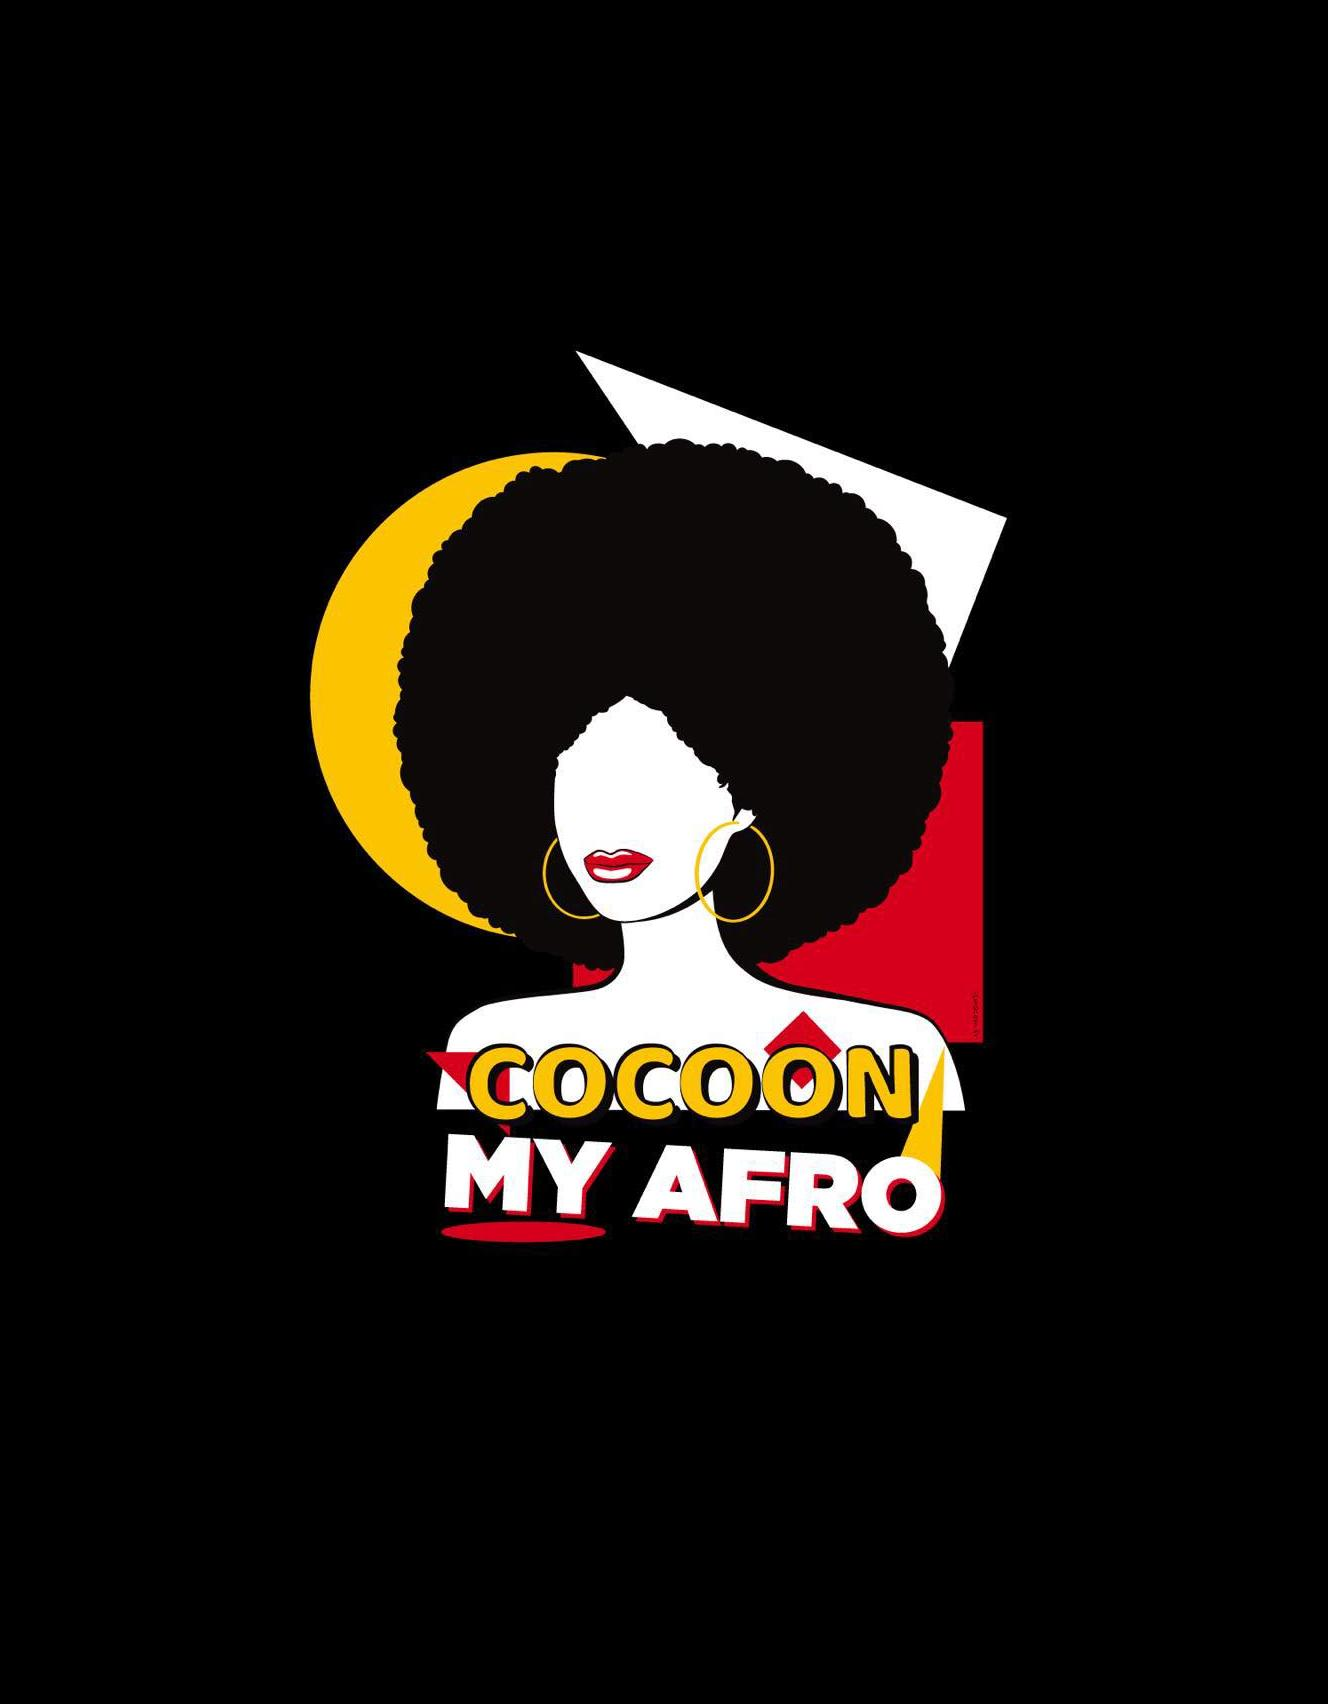 Cocoon My Afro